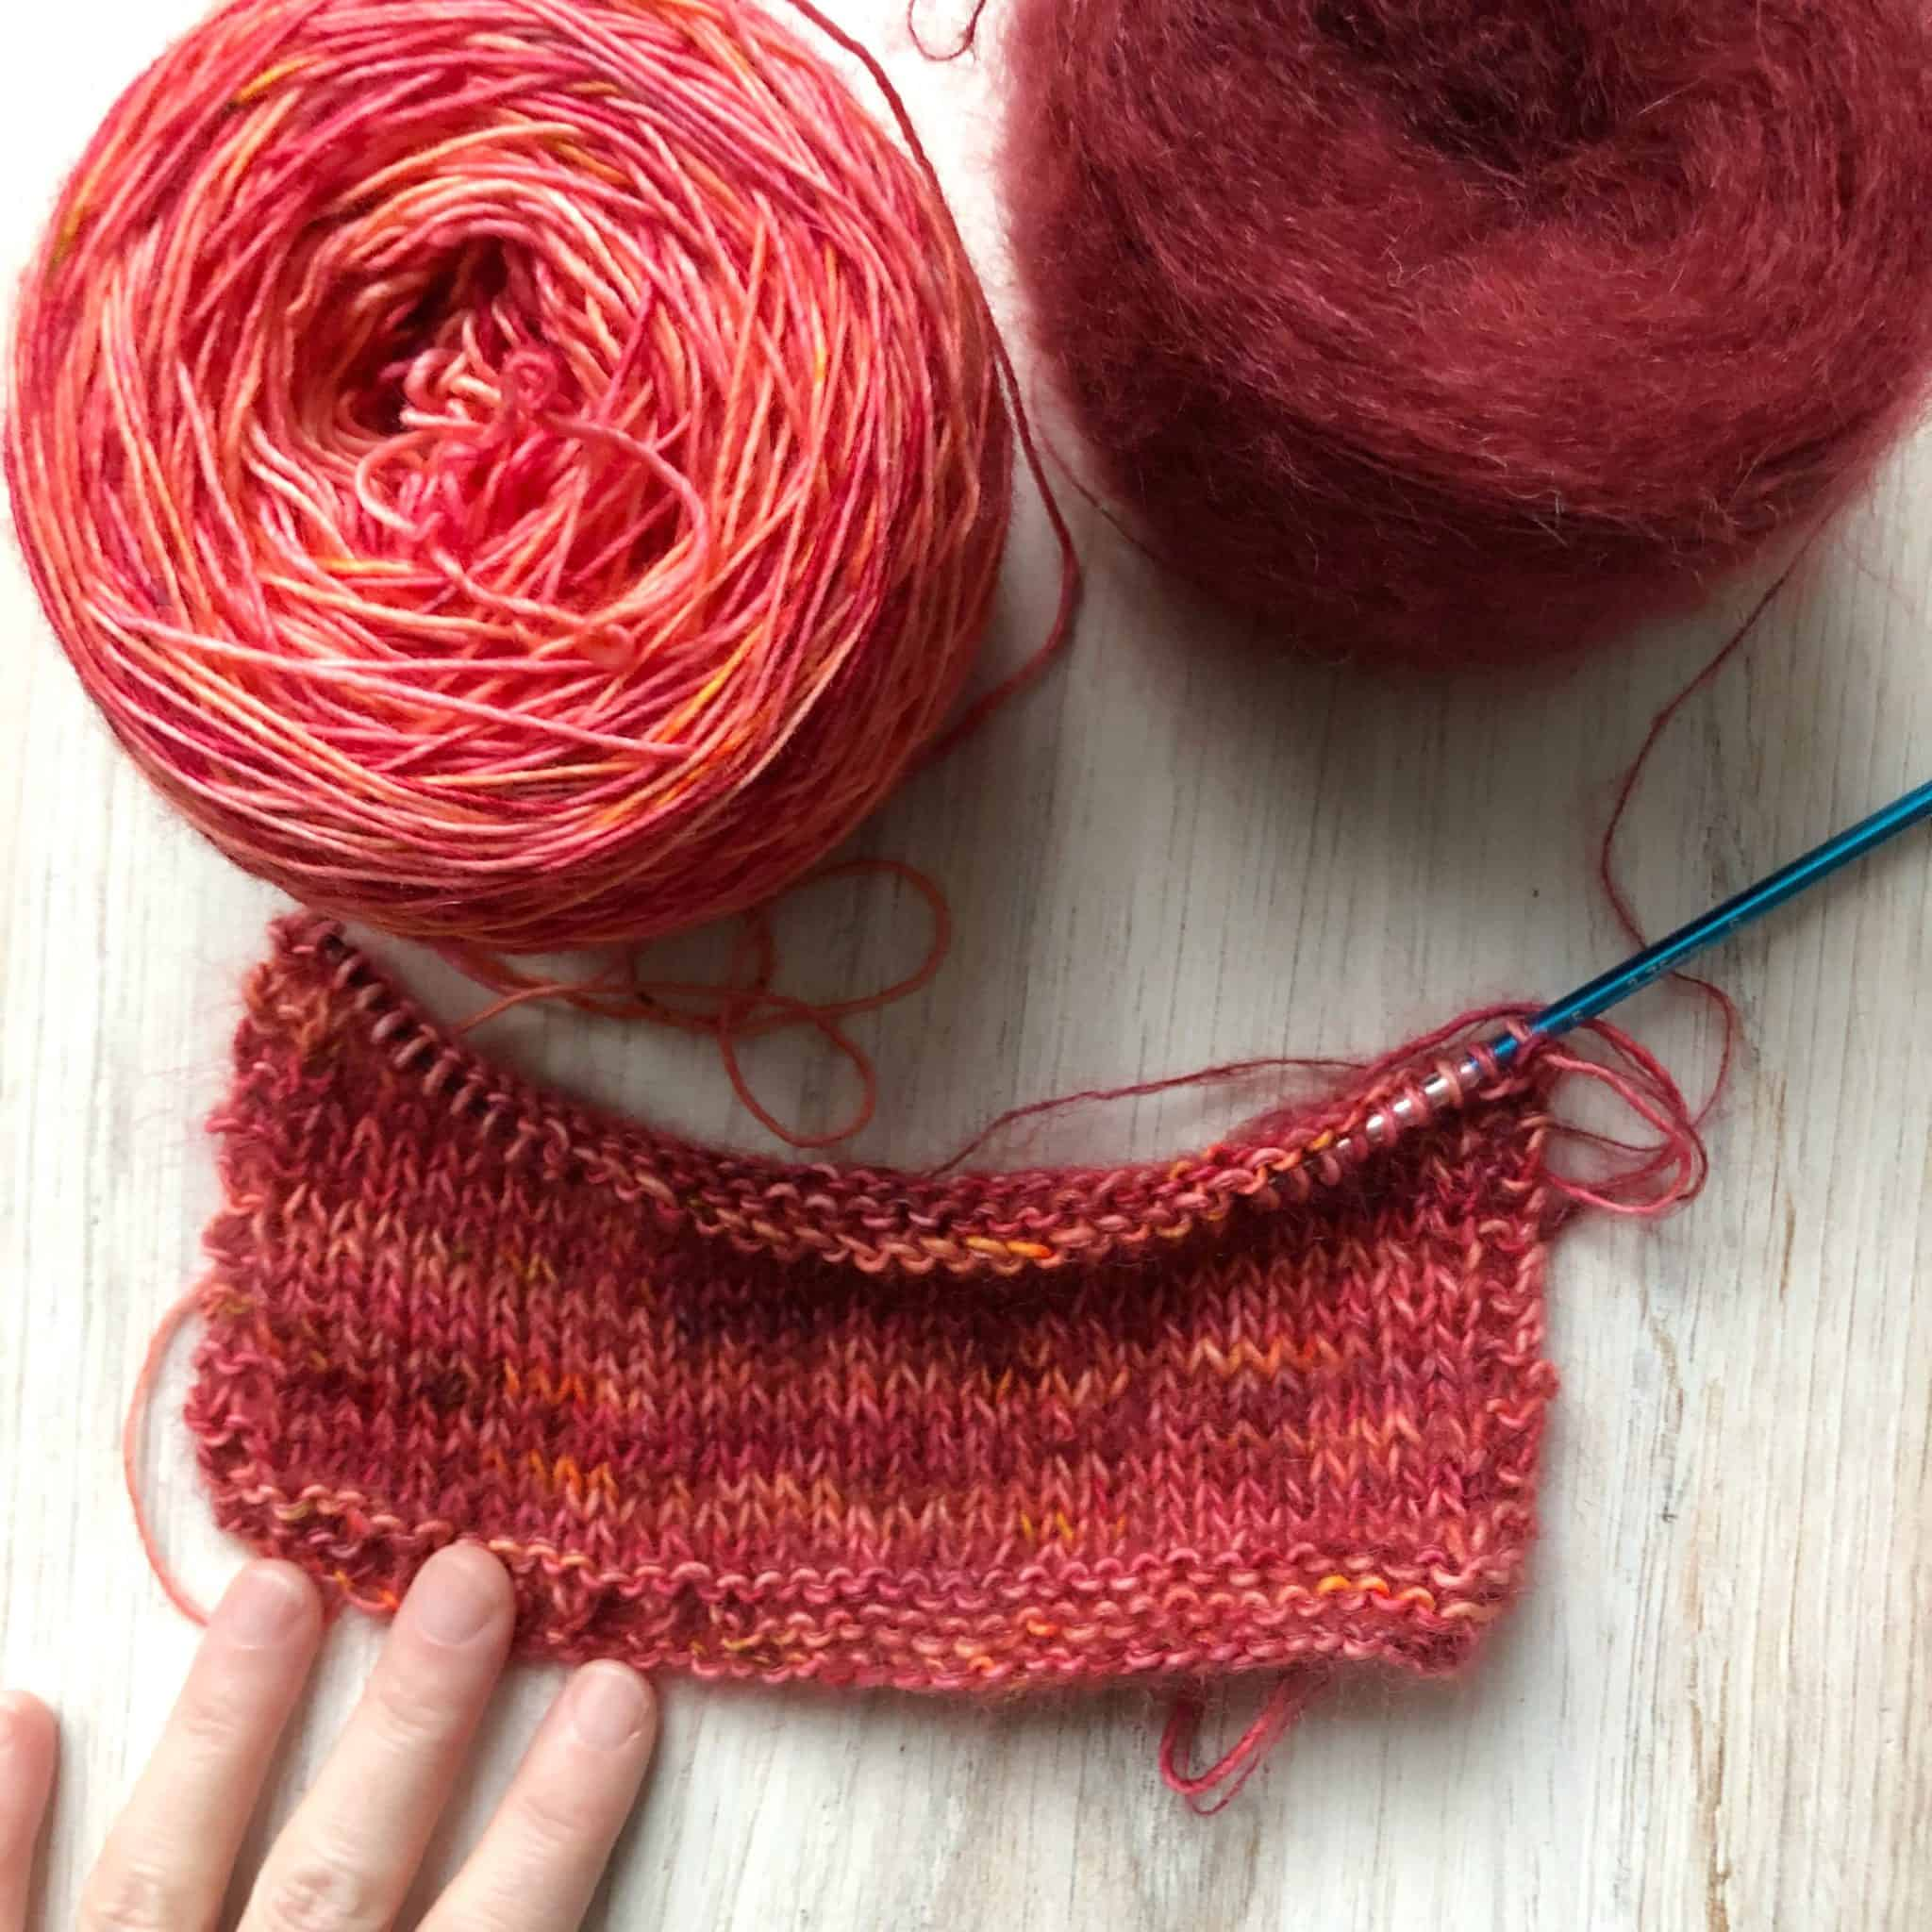 Cakes of red and purple wool and mohair yarn knit together in a swatch.